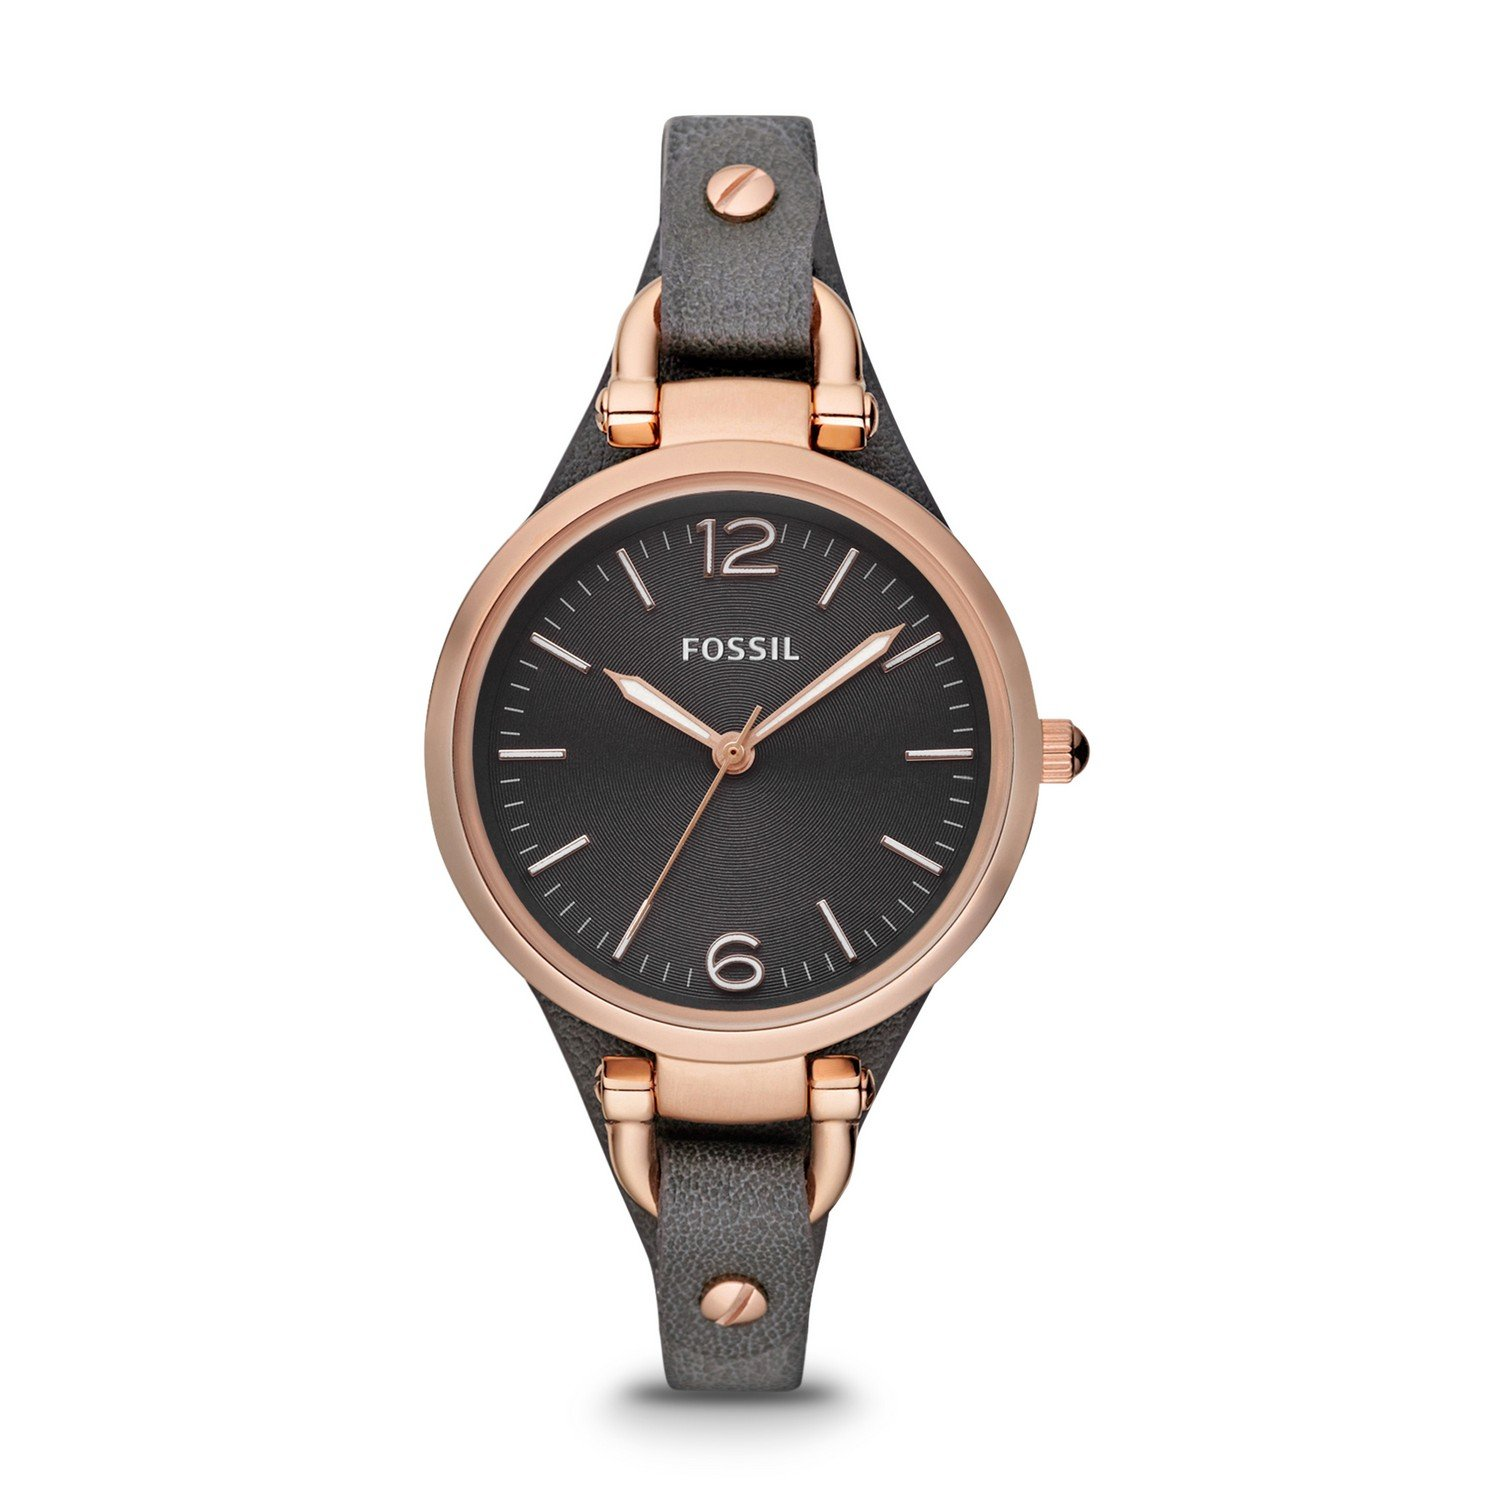 01e585745 Details about Fossil Women's Georgia Quartz Stainless Steel and Leather  Casual Watch,.